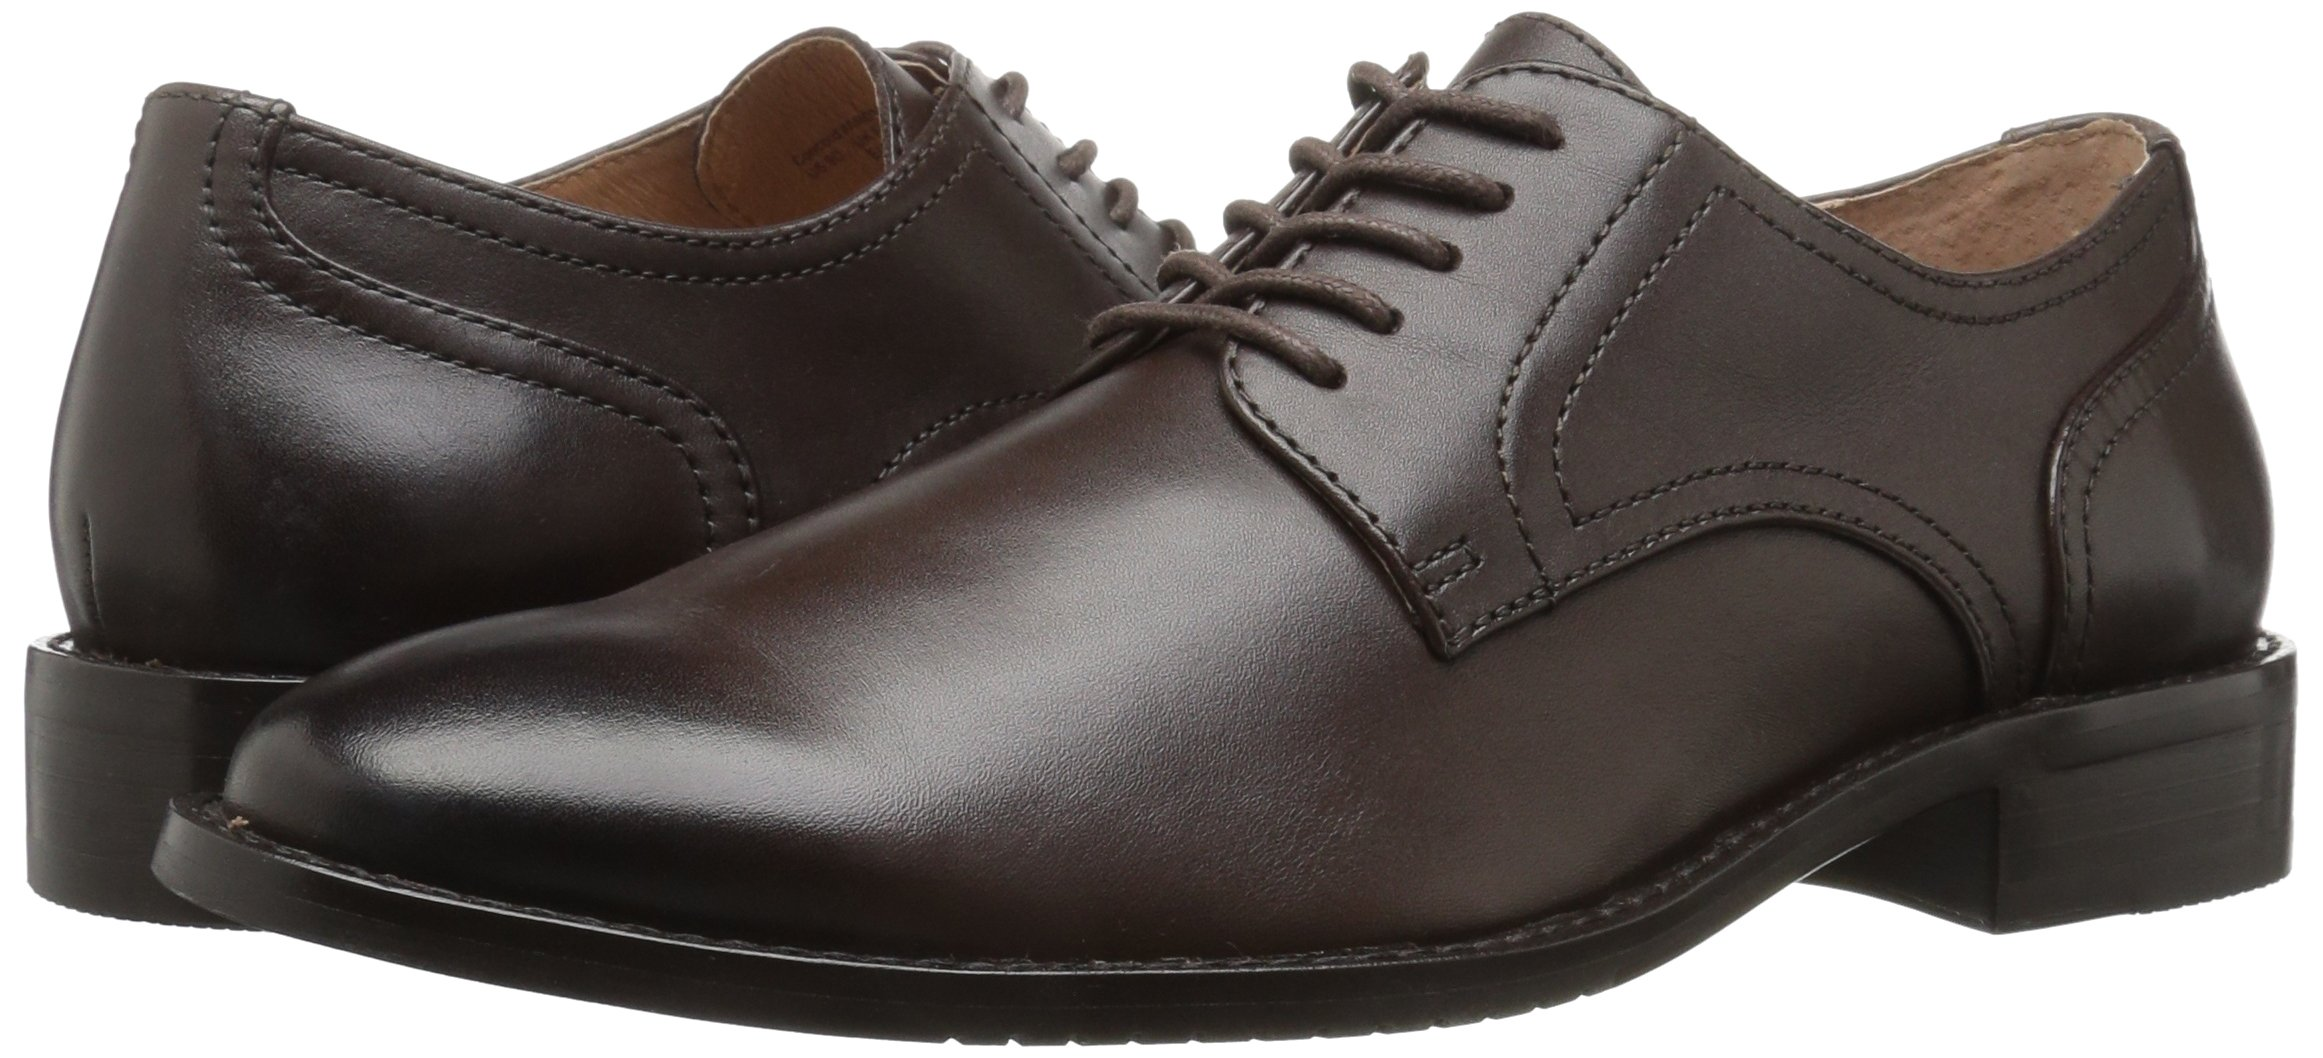 206 Collective Men's Concord Plain-Toe Oxford Shoe, Chocolate Brown, 11 D US by 206 Collective (Image #6)